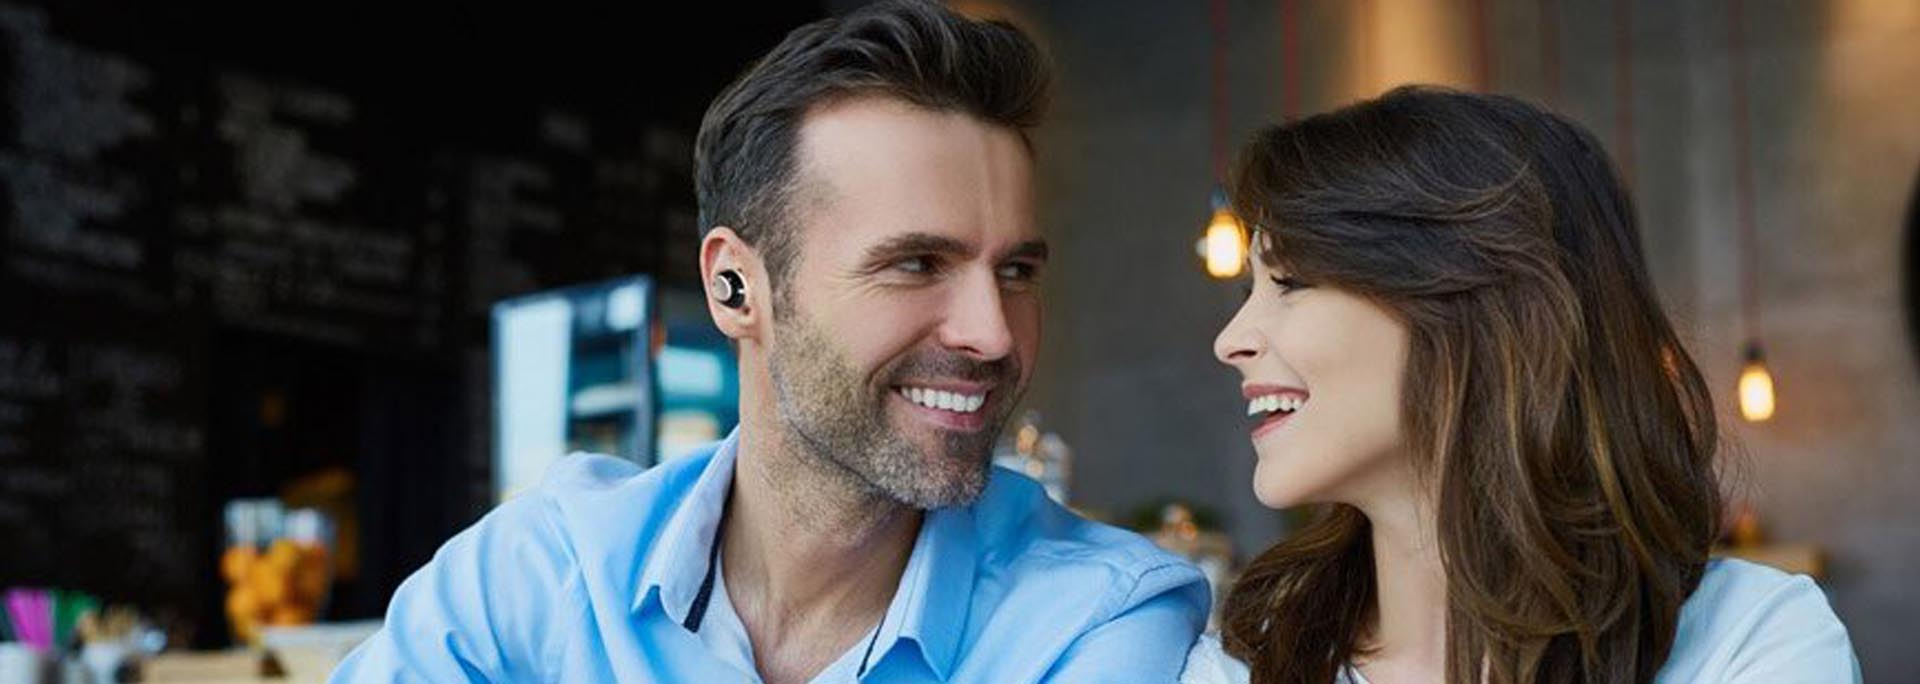 Nuheara Truly Wireless Earbuds in a Bar